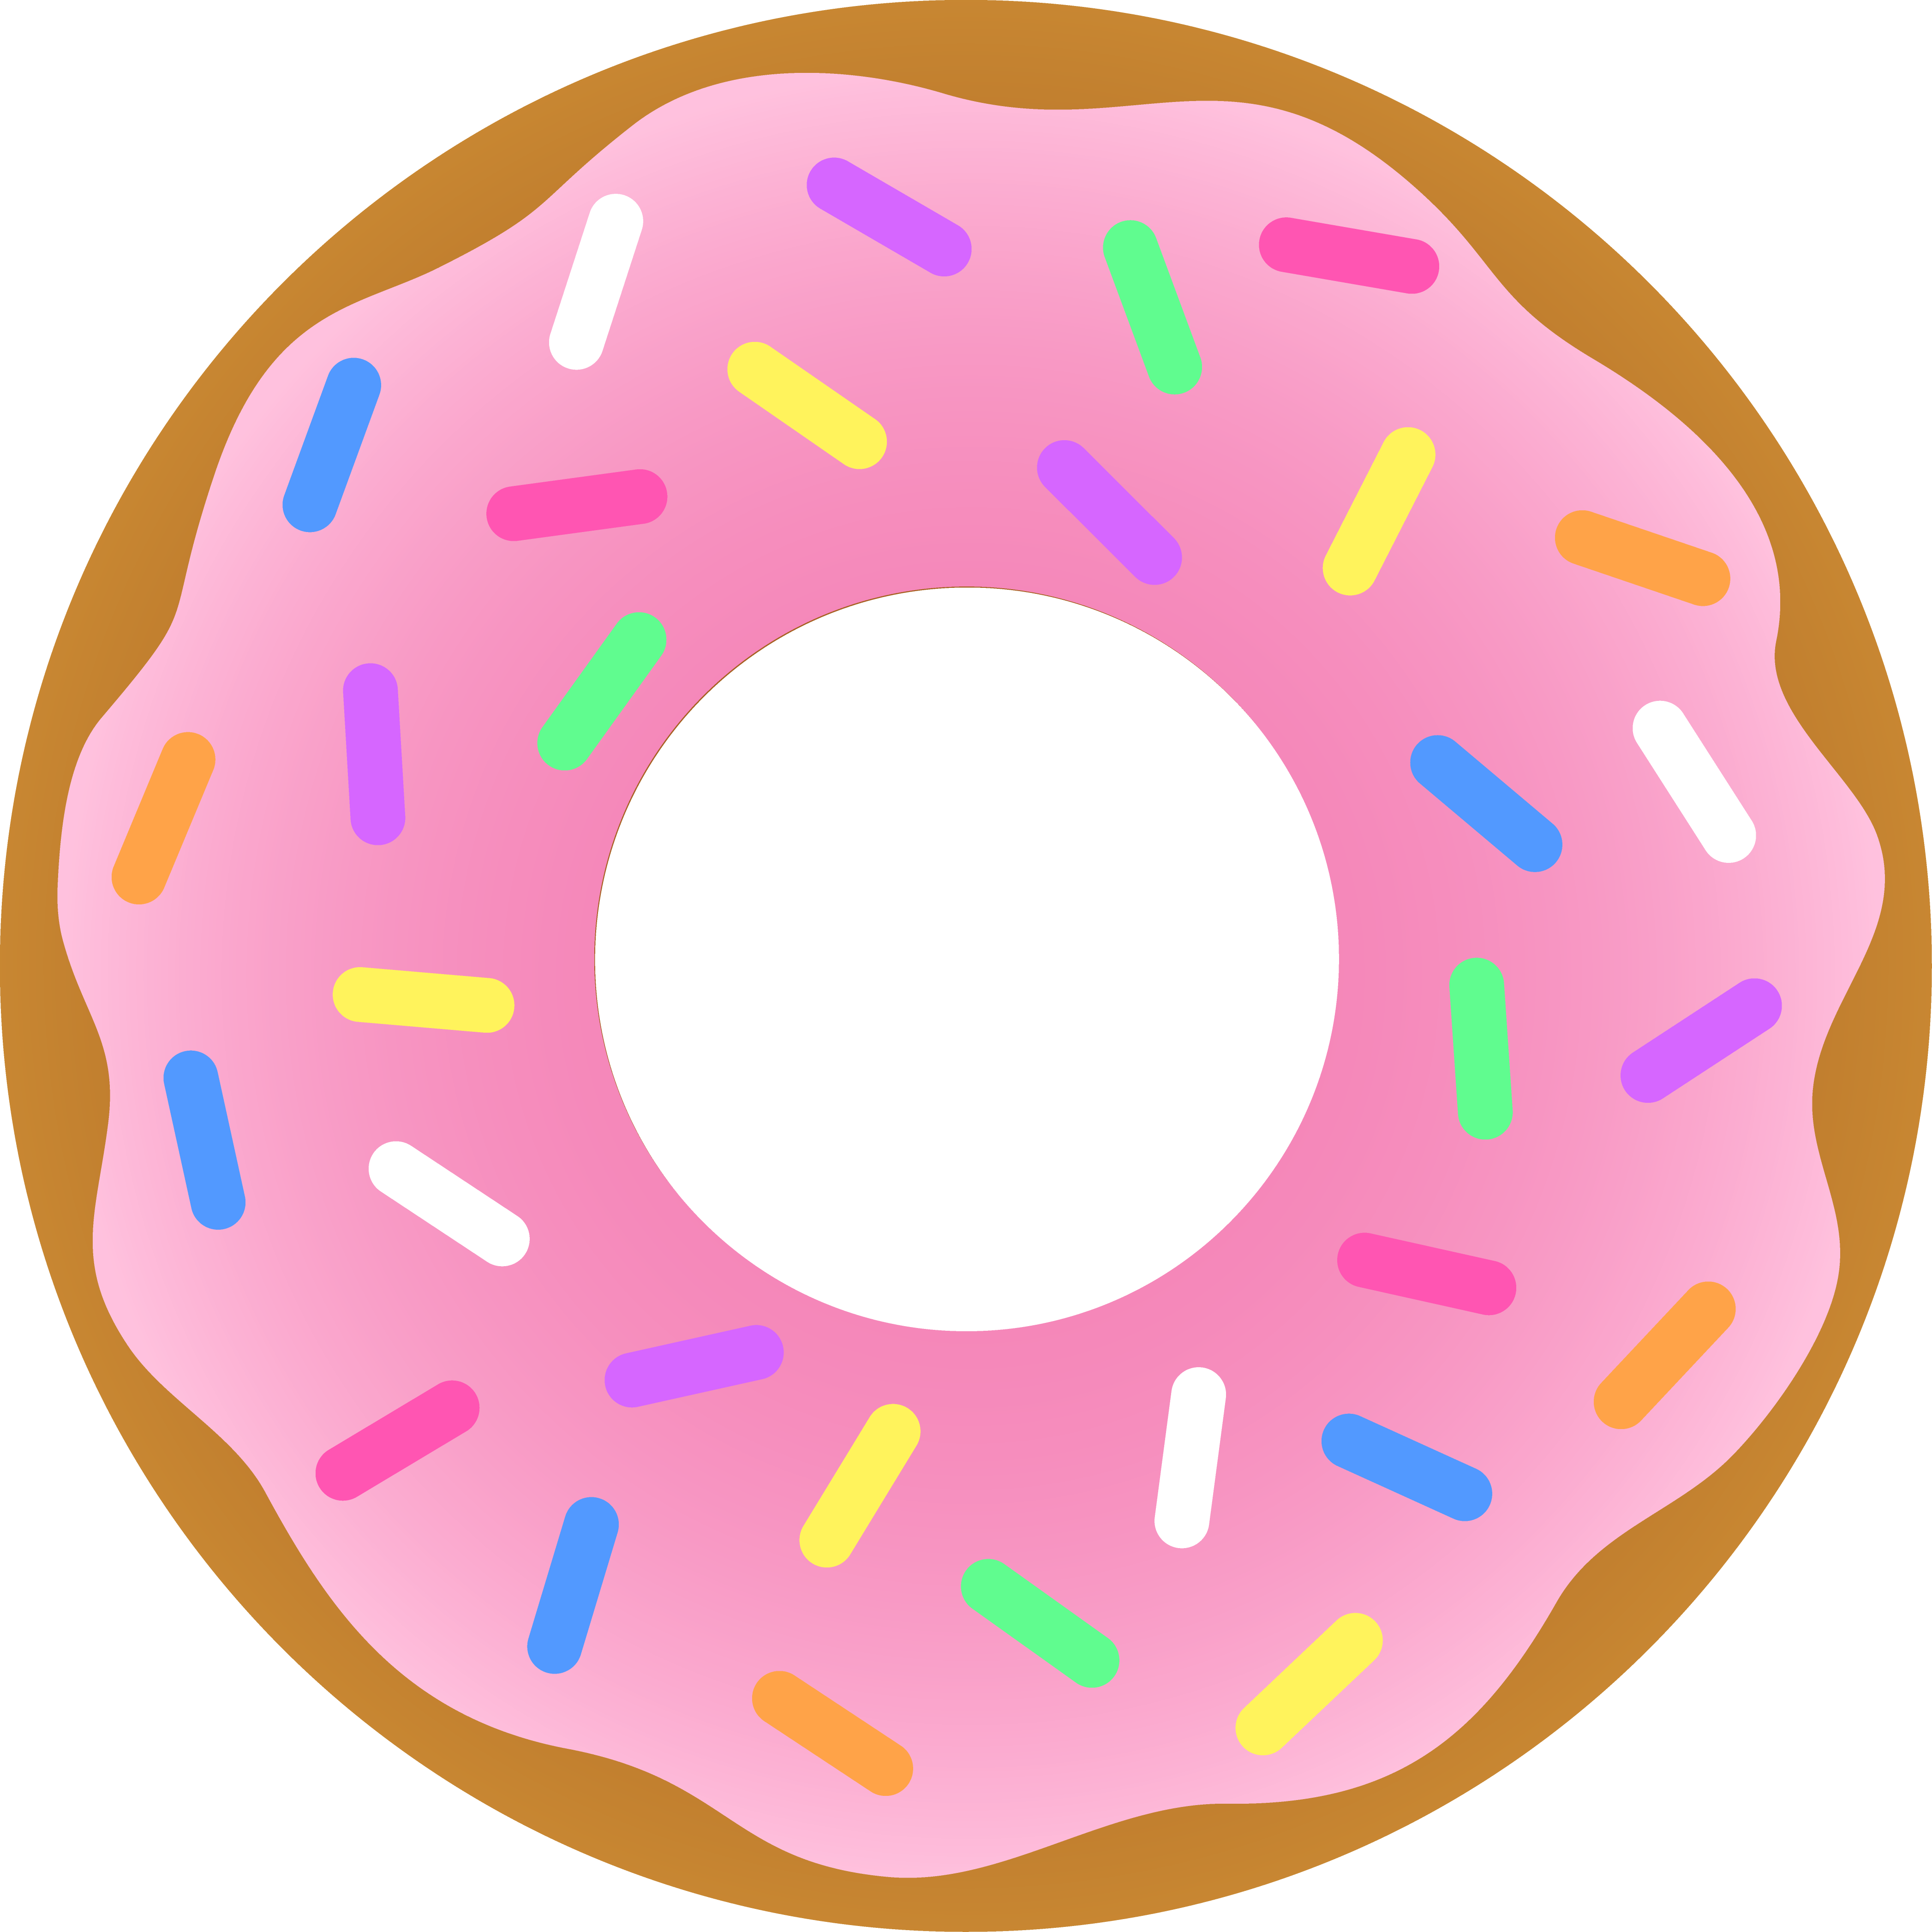 Doughnut clipart #1, Download drawings